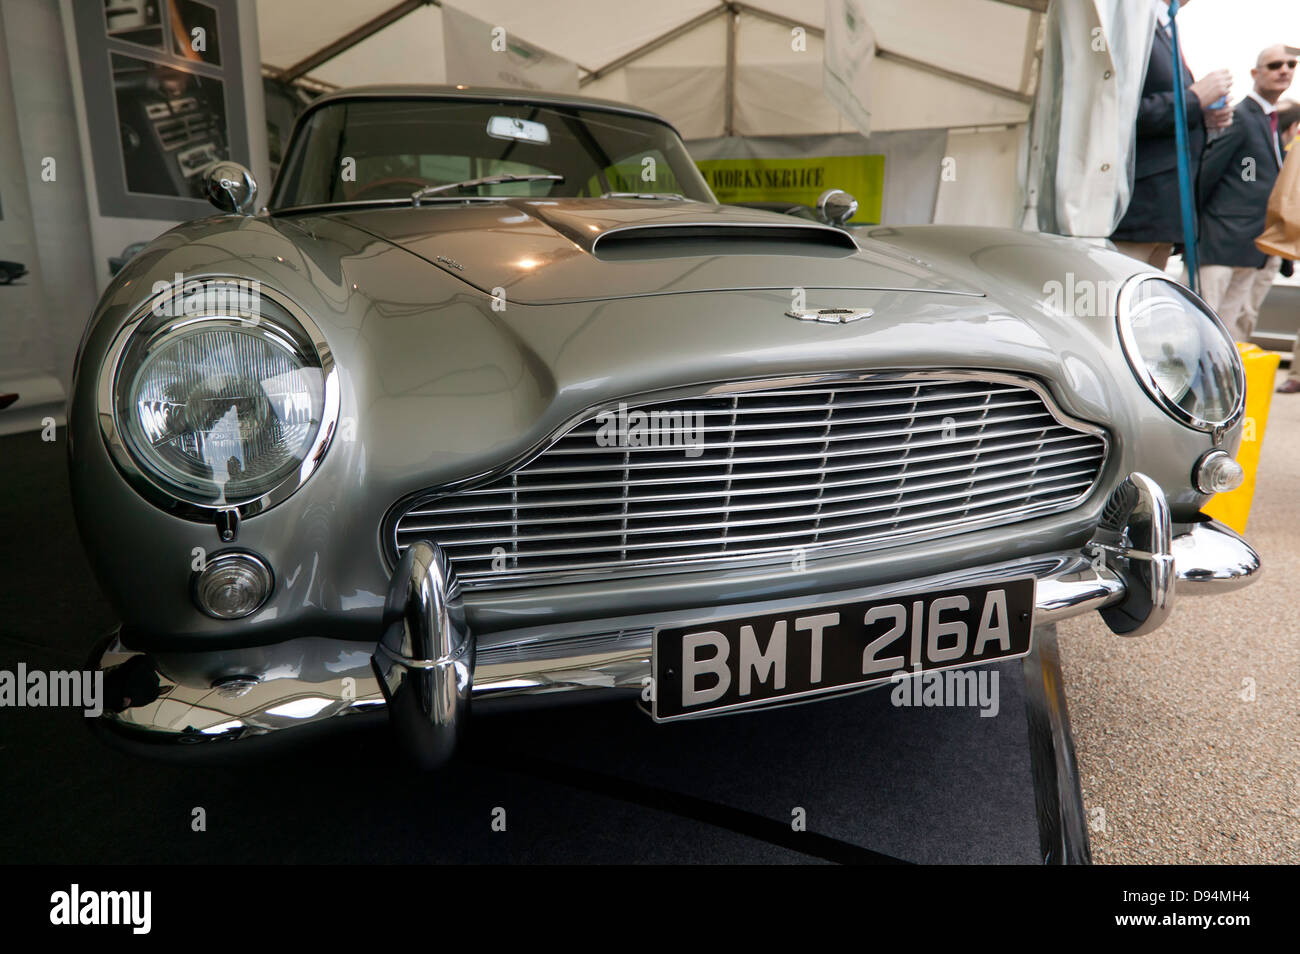 Front View Of The Classic Aston Martin DB5 Which Was Driven By Daniel  Craig, In The Bond Film, Skyfall.